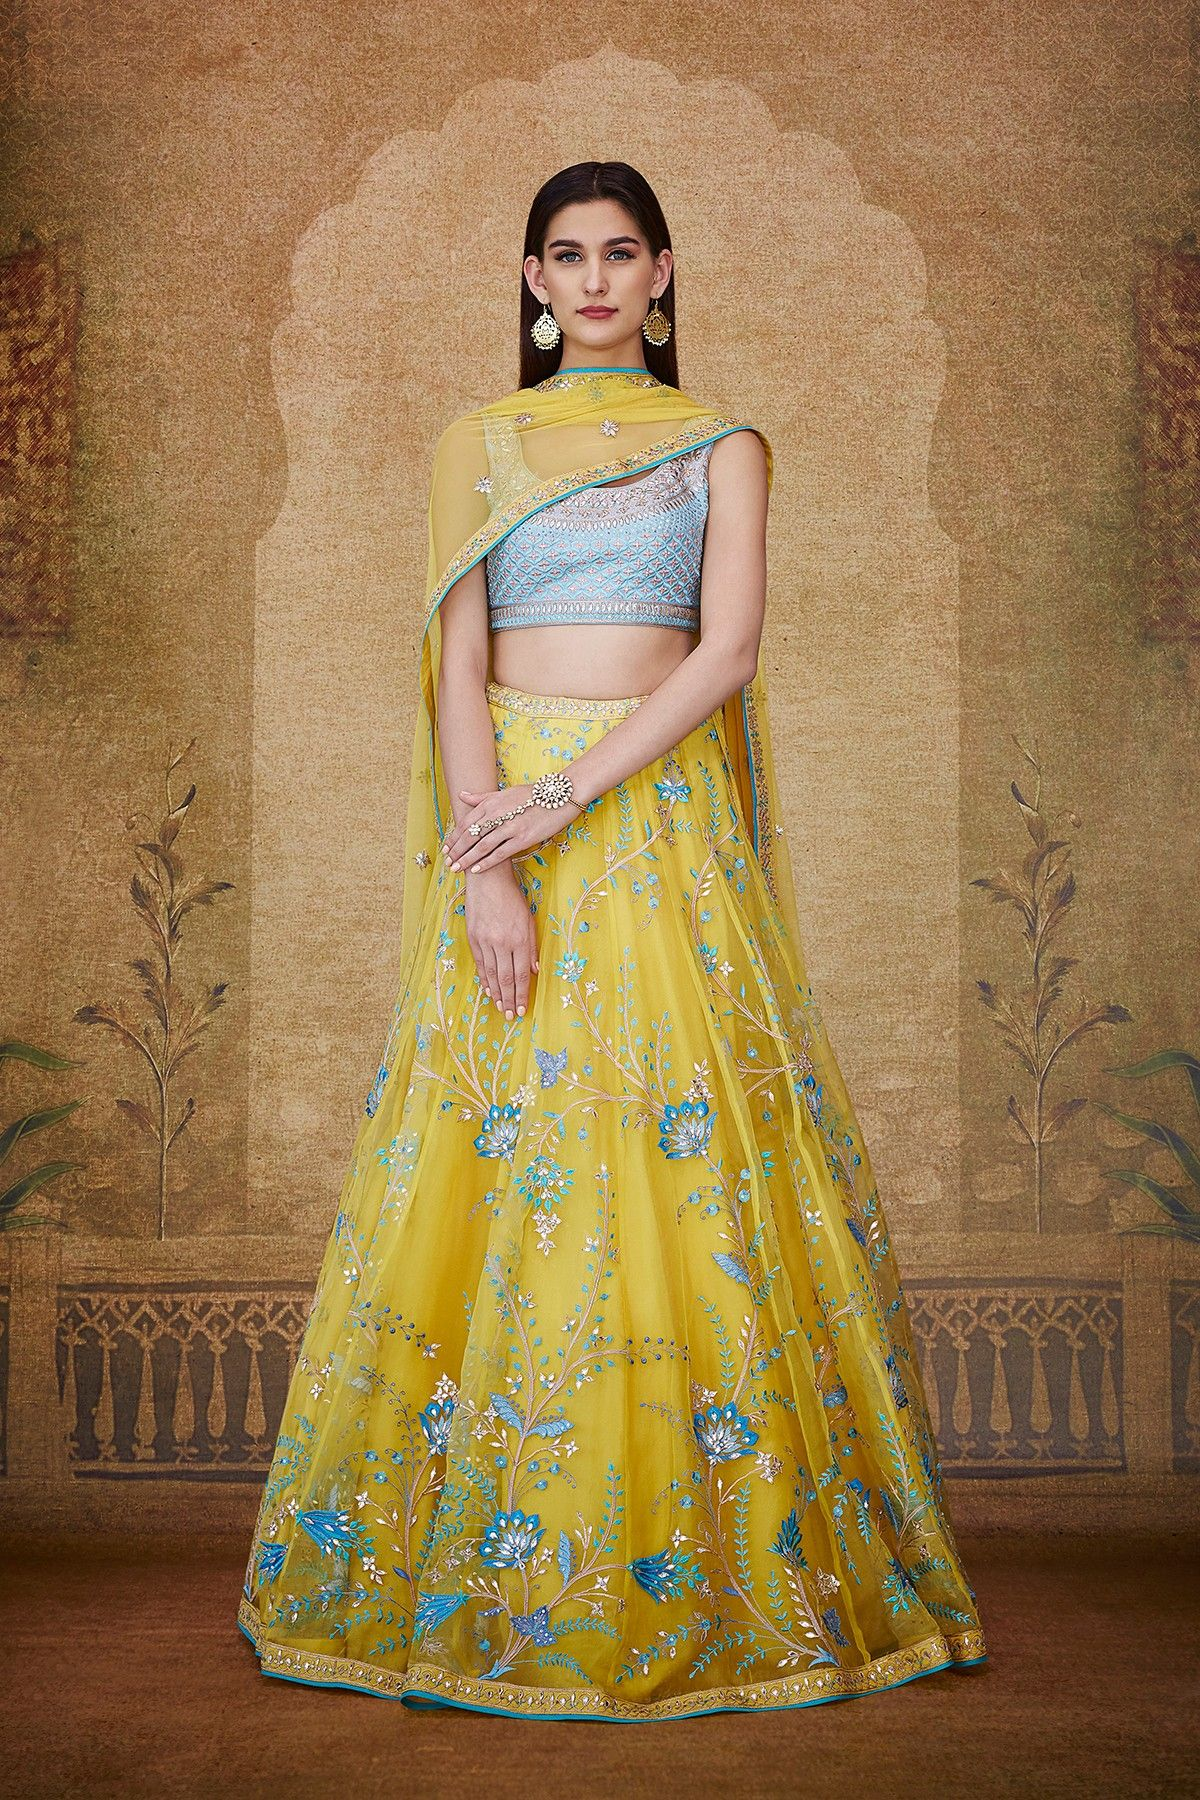 55c40542872 A powder blue silk choli paired with a yellow organza A-line lehenga with  minimal touches of blue